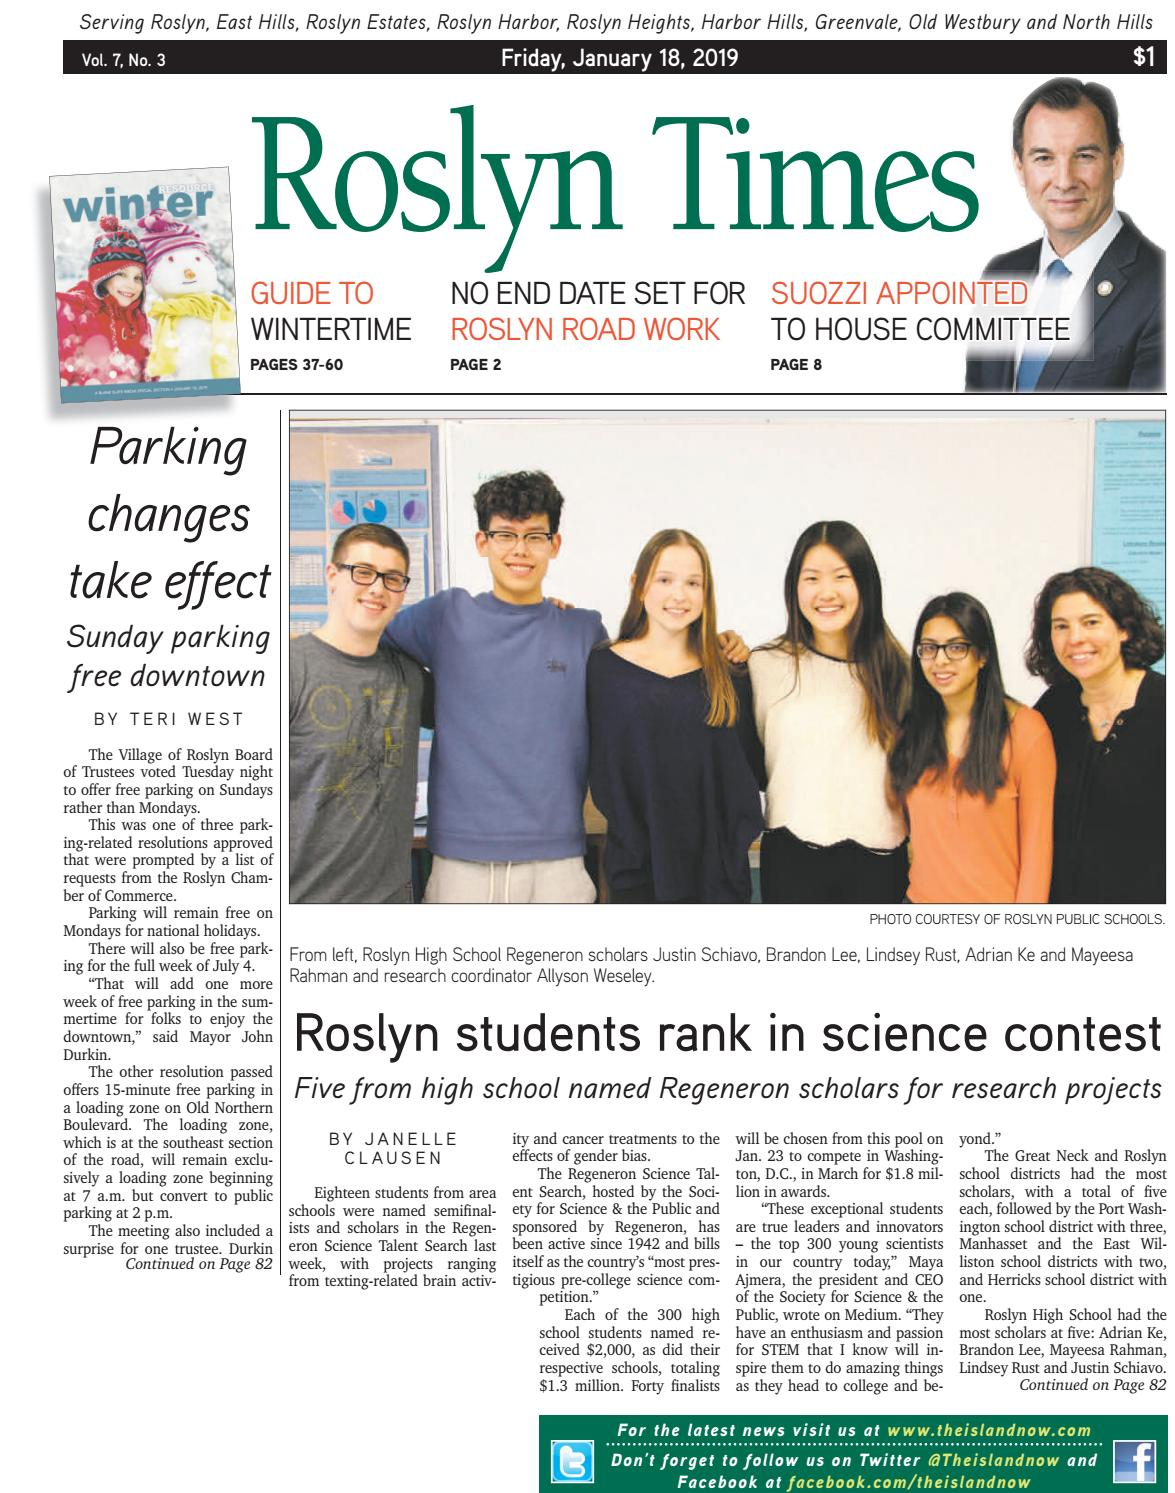 Roslyn 2019_01_18 by The Island Now - issuu